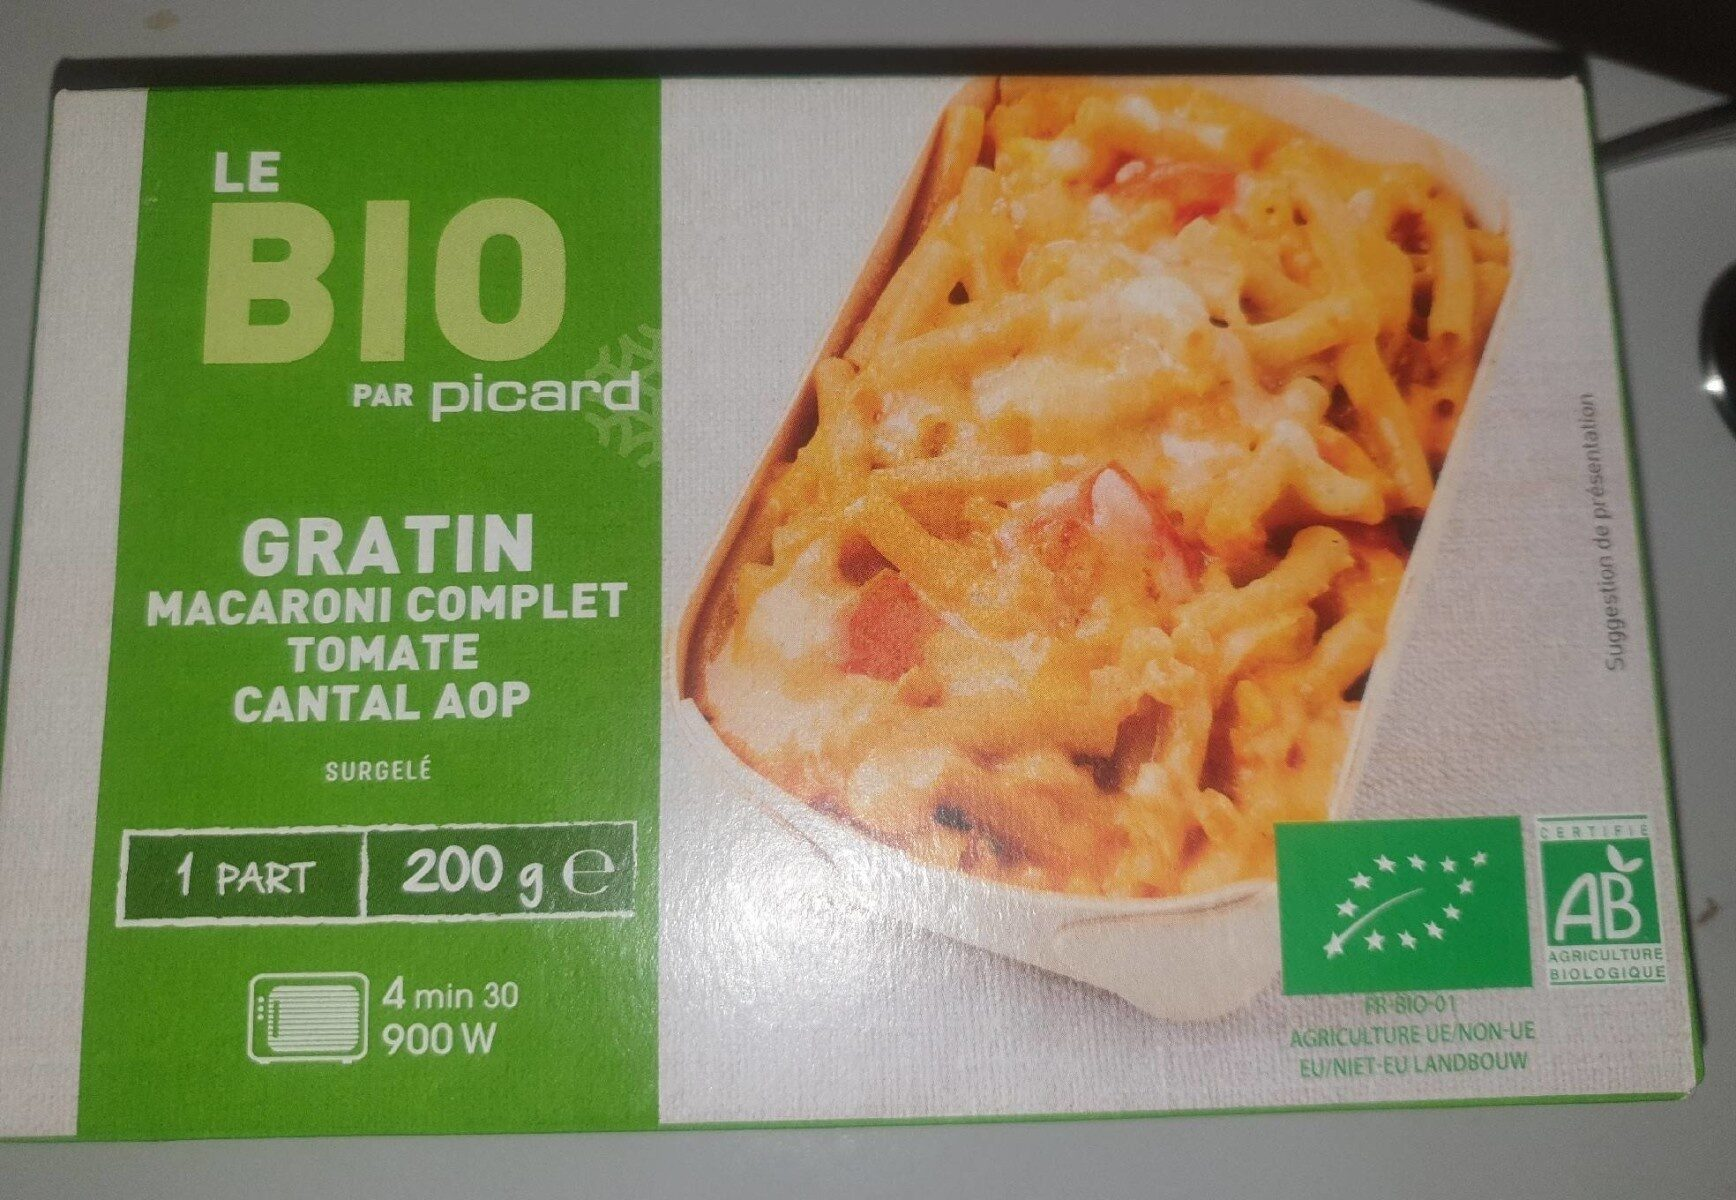 Gratin Macaroni Complet Tomate Cantal AOP - Prodotto - fr